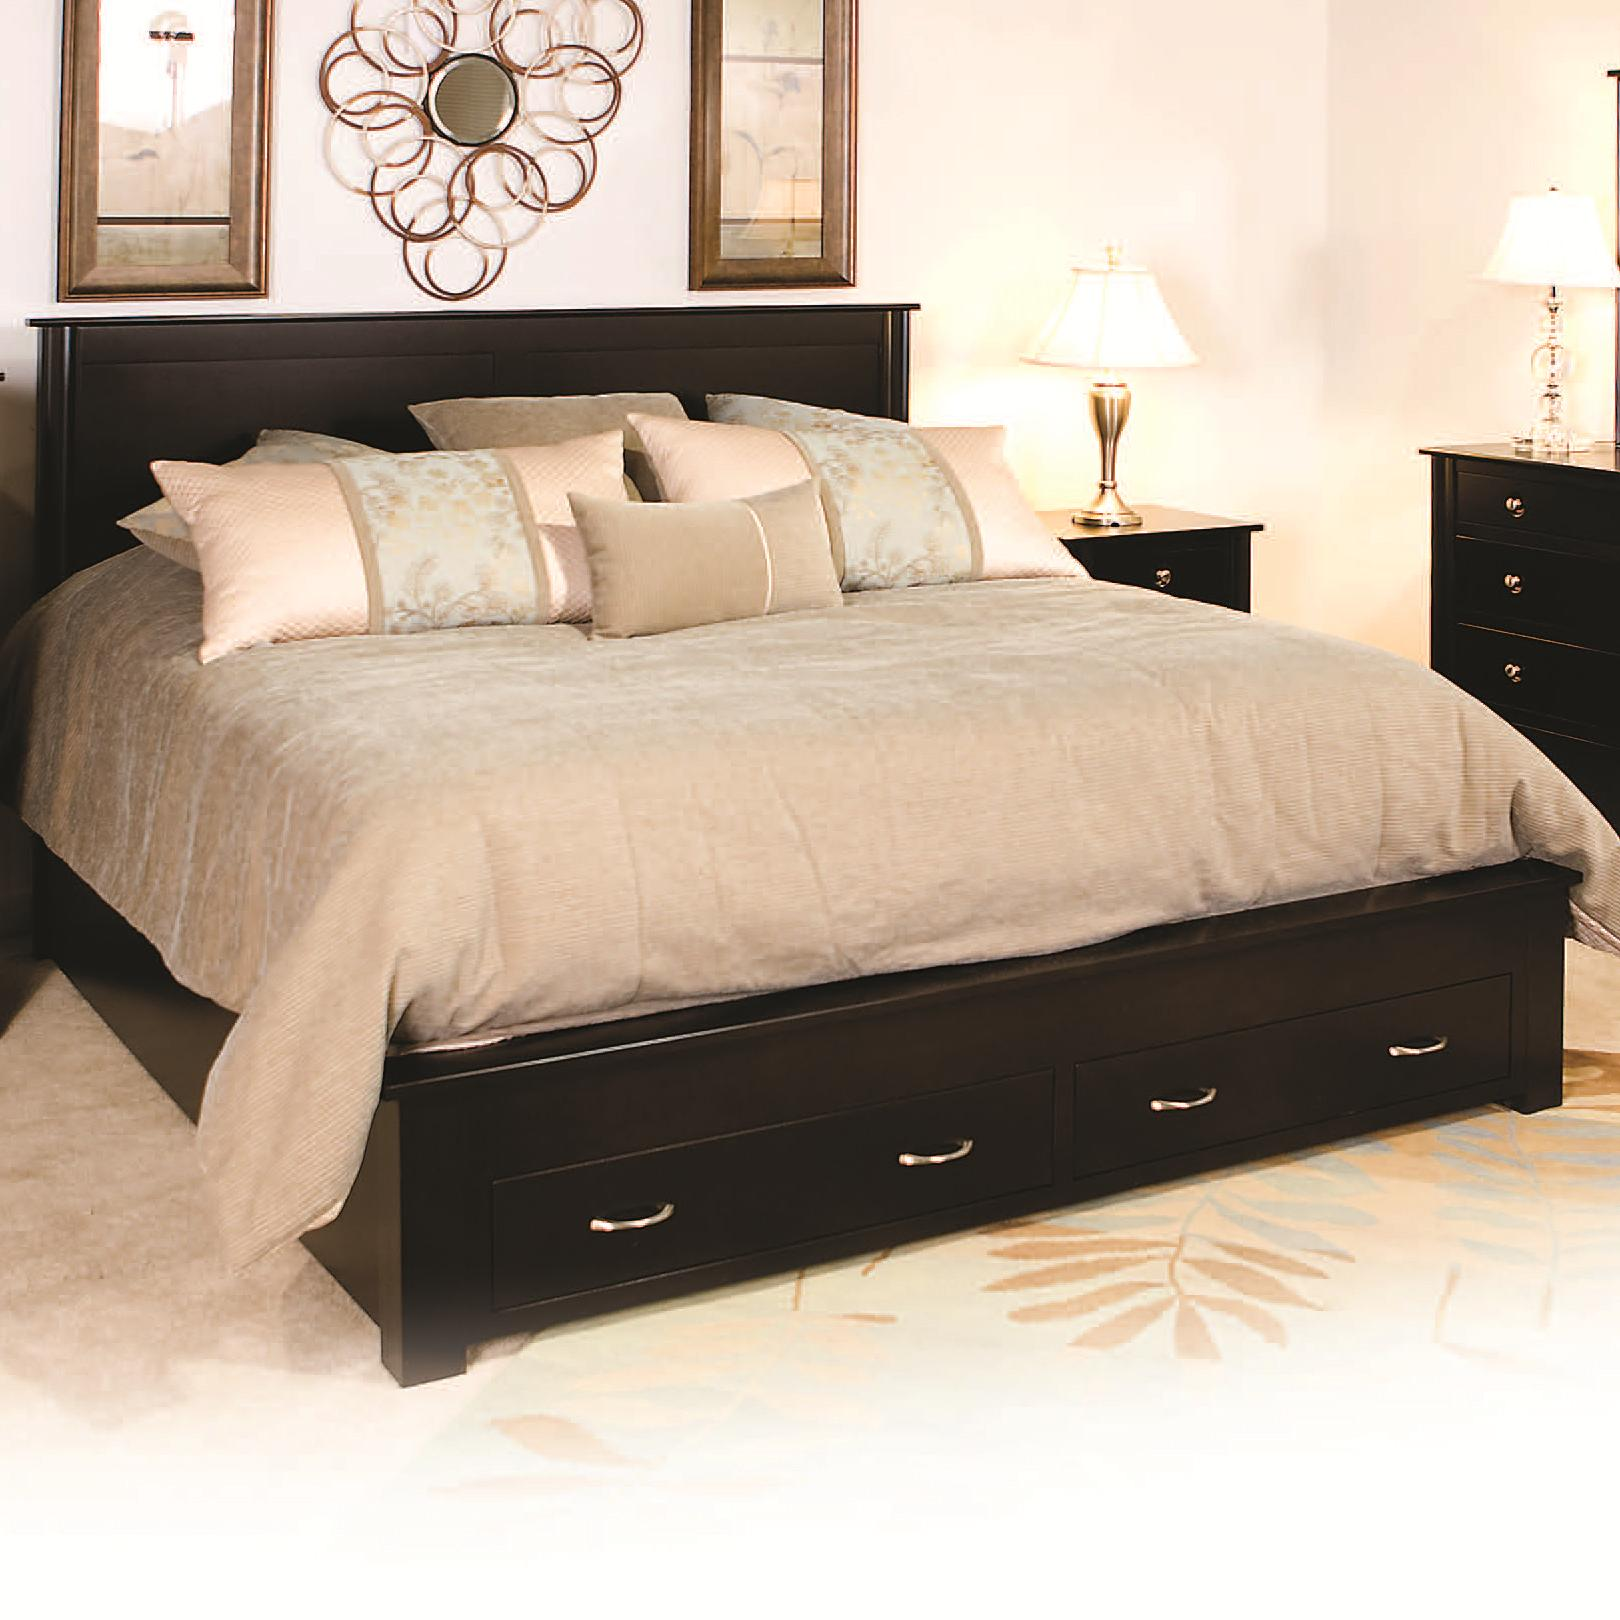 Cosmopolitan Frame Bed with 2 Footboard Drawers by Daniel's Amish at H.L. Stephens